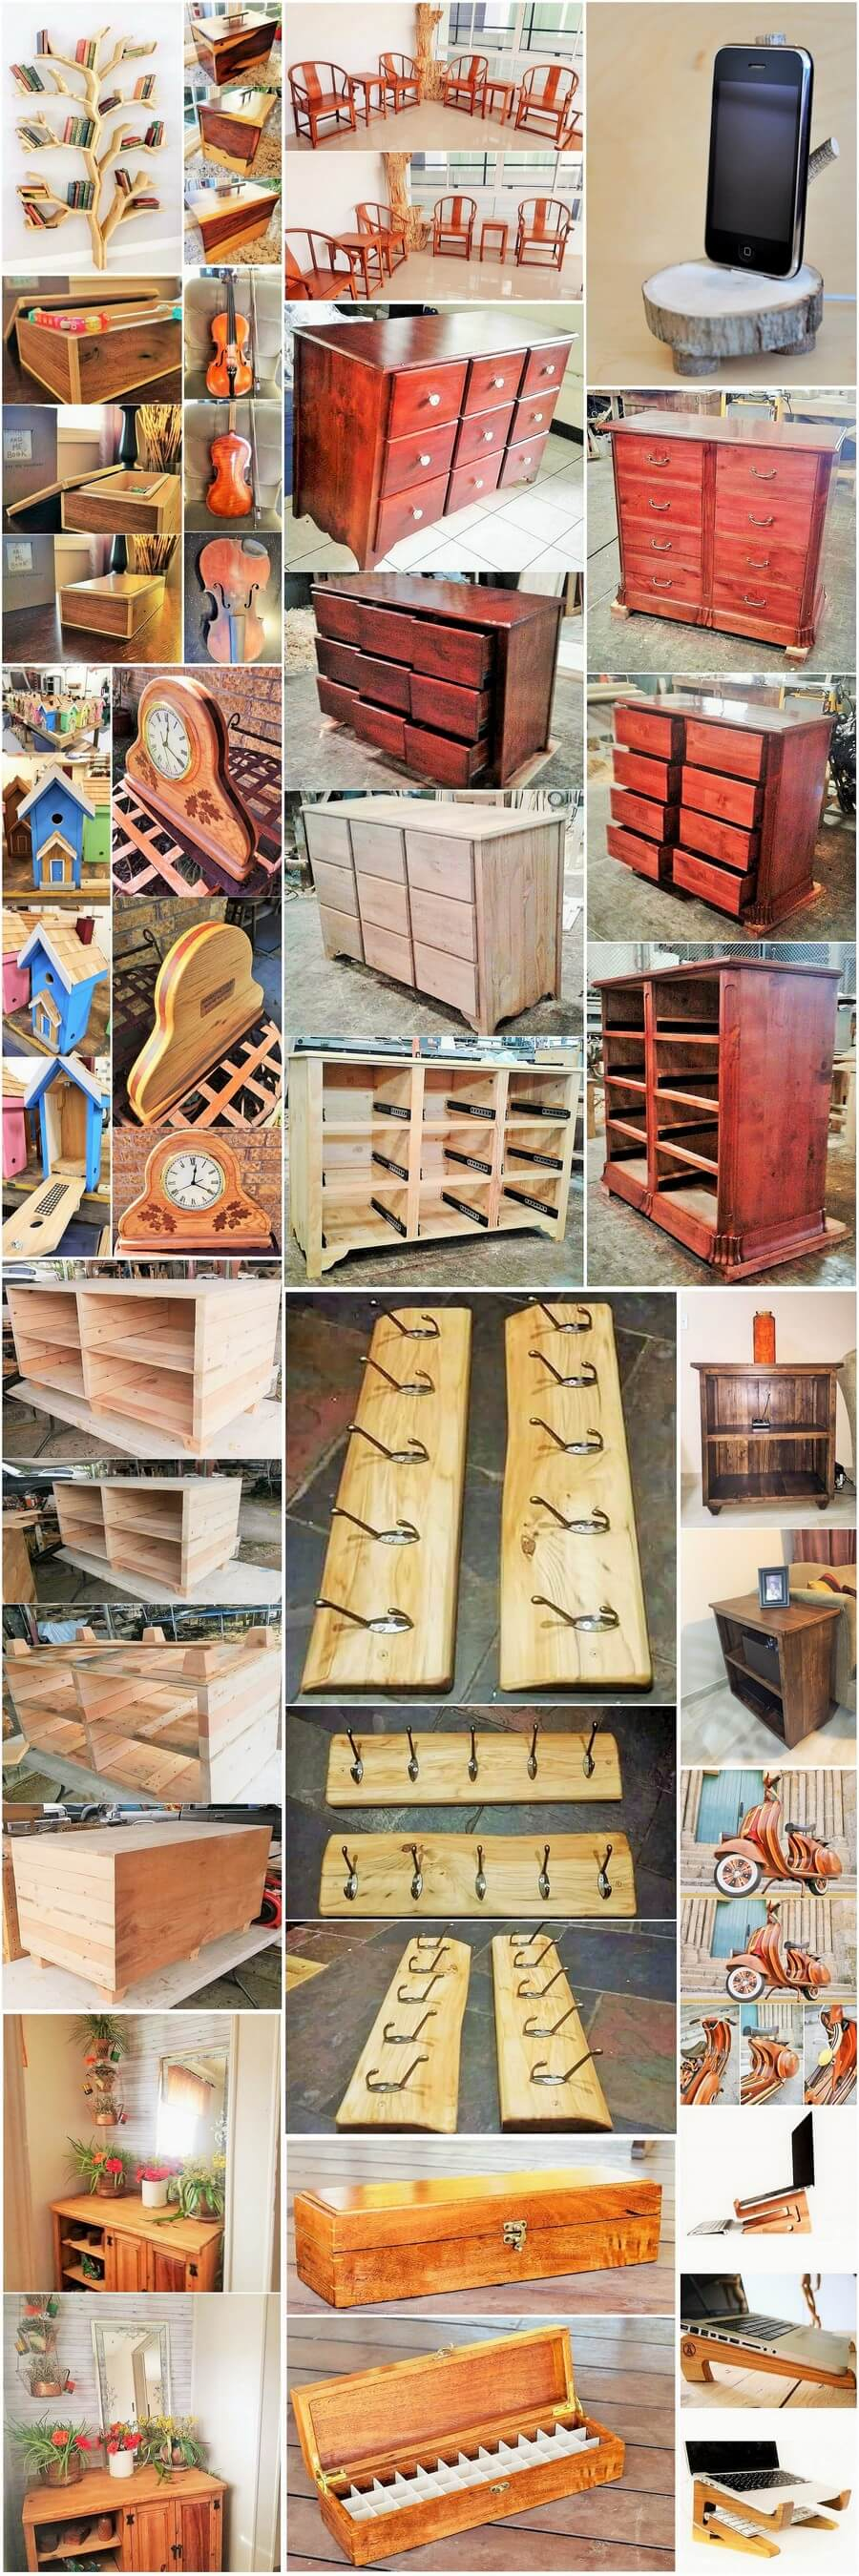 wooden Made furniture